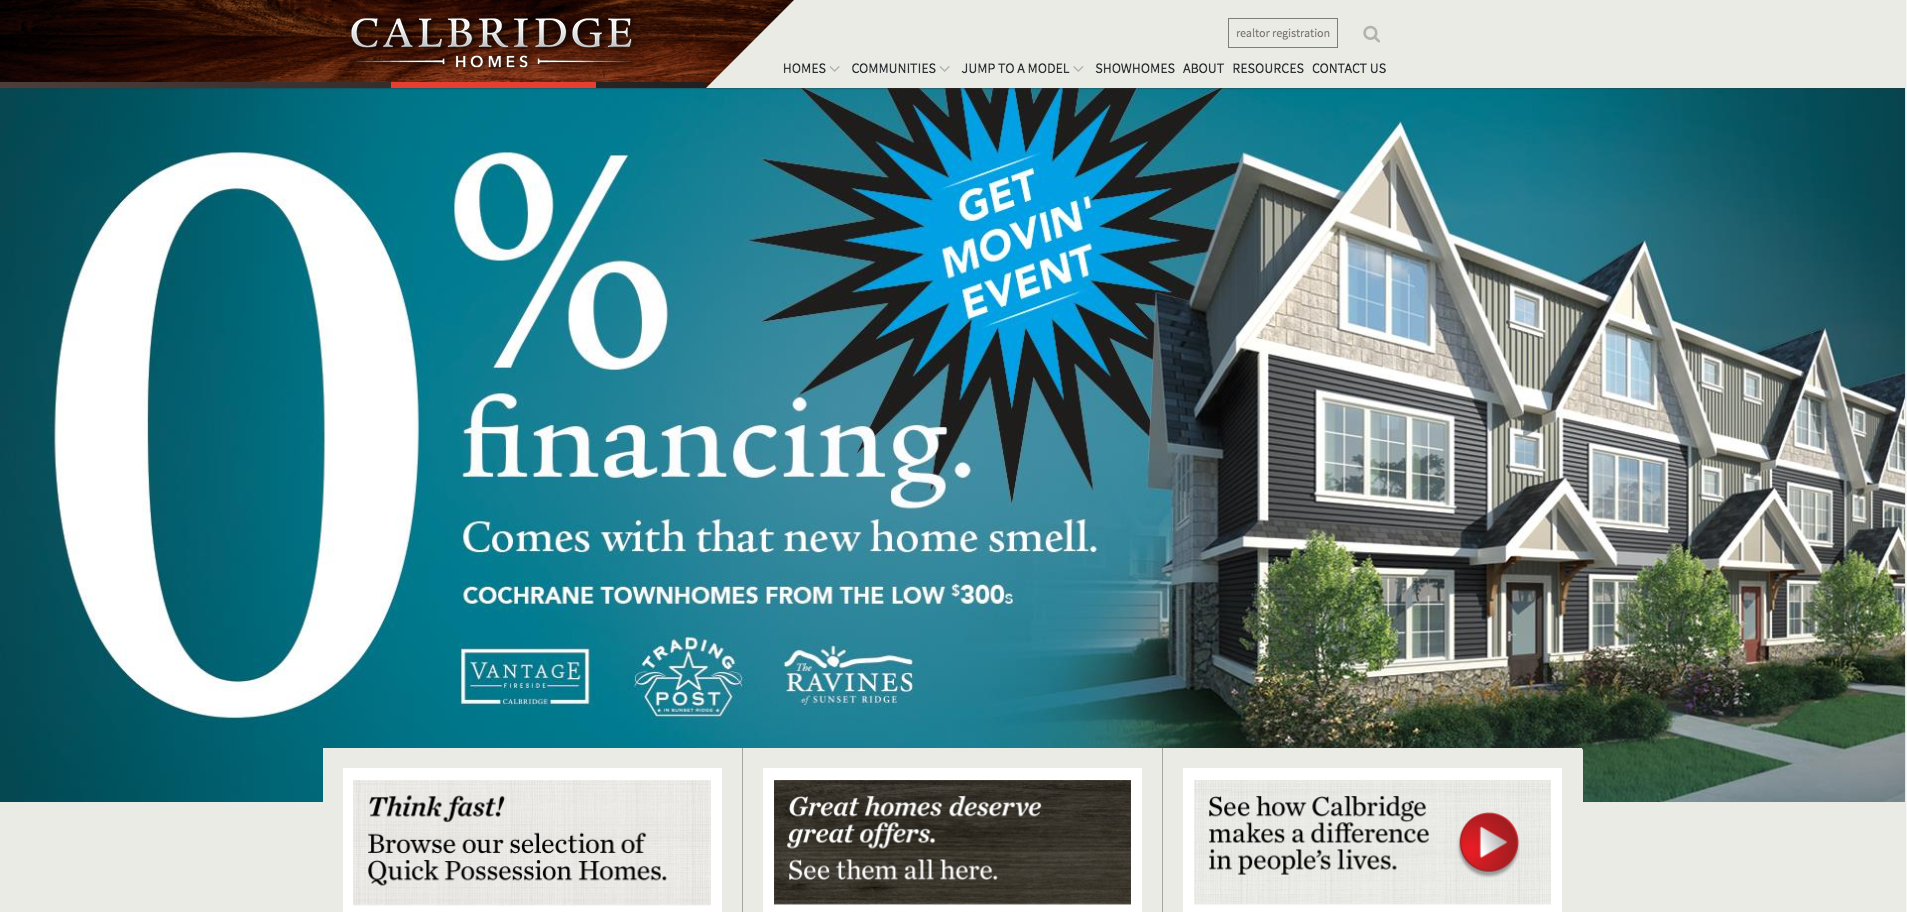 A screenshot of the Calbridge Homes homepage.